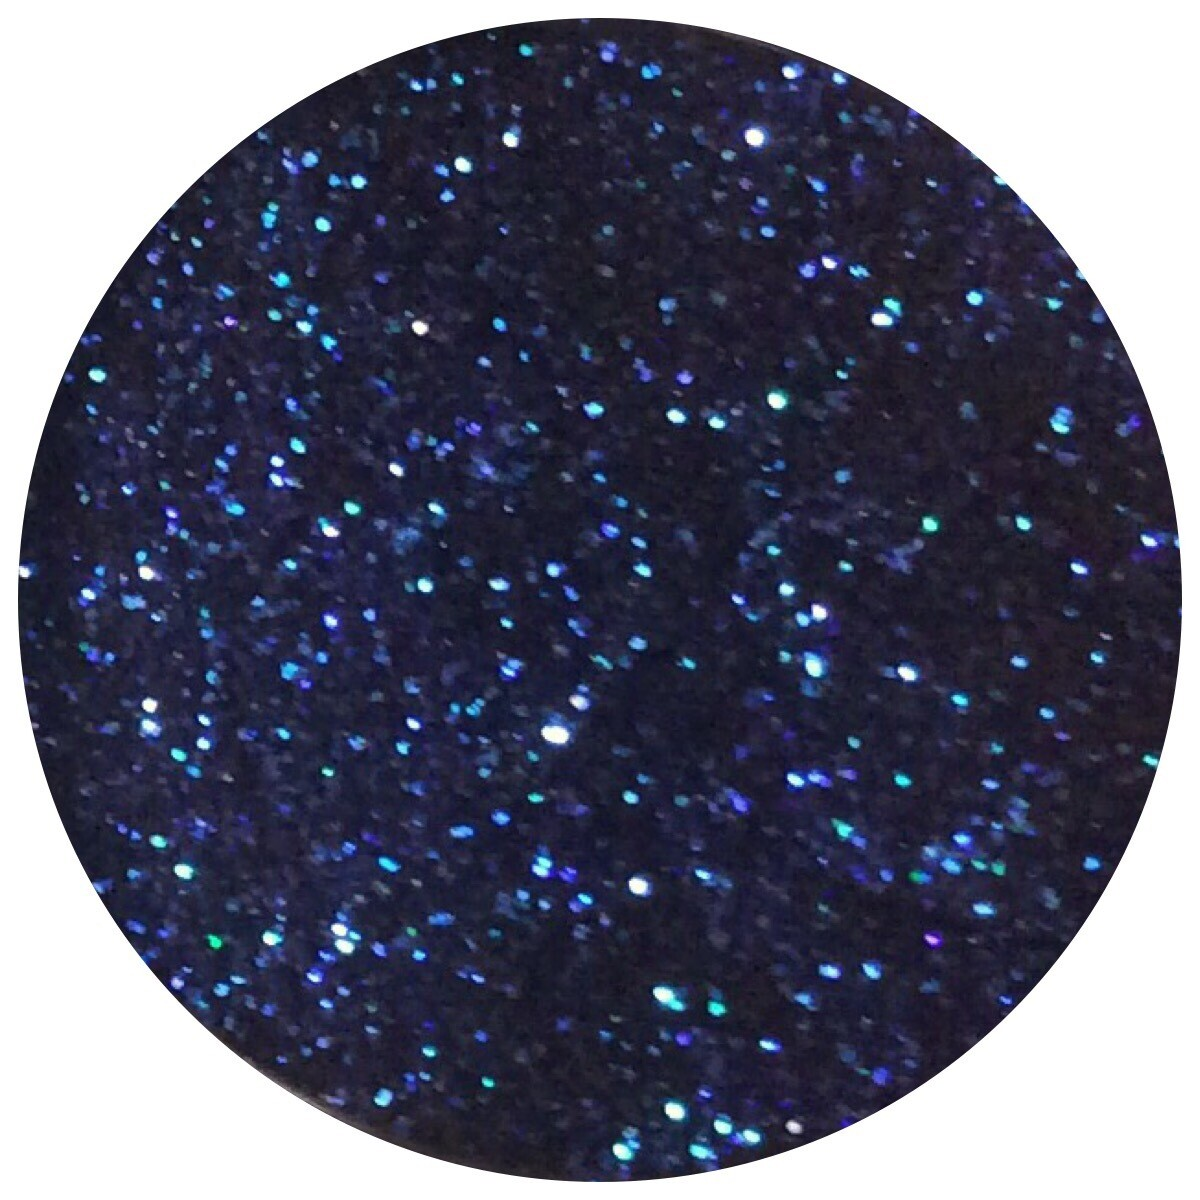 Boysenberry Sparkle Colorshift Glitter (NEW)(Blue/purple)